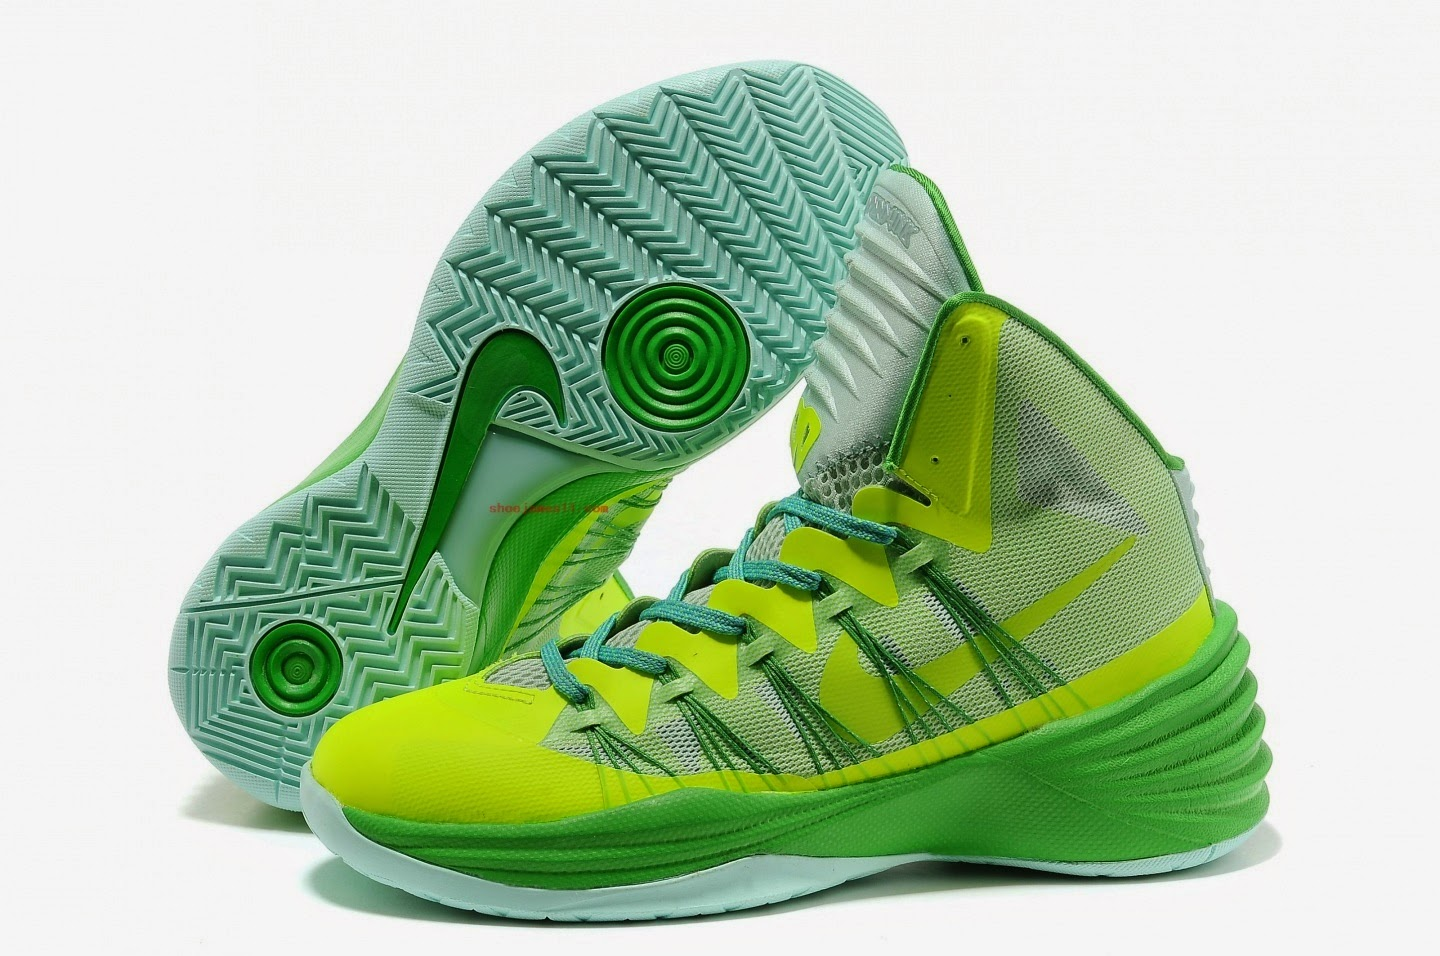 Pix For Bright Green Basketball Shoes